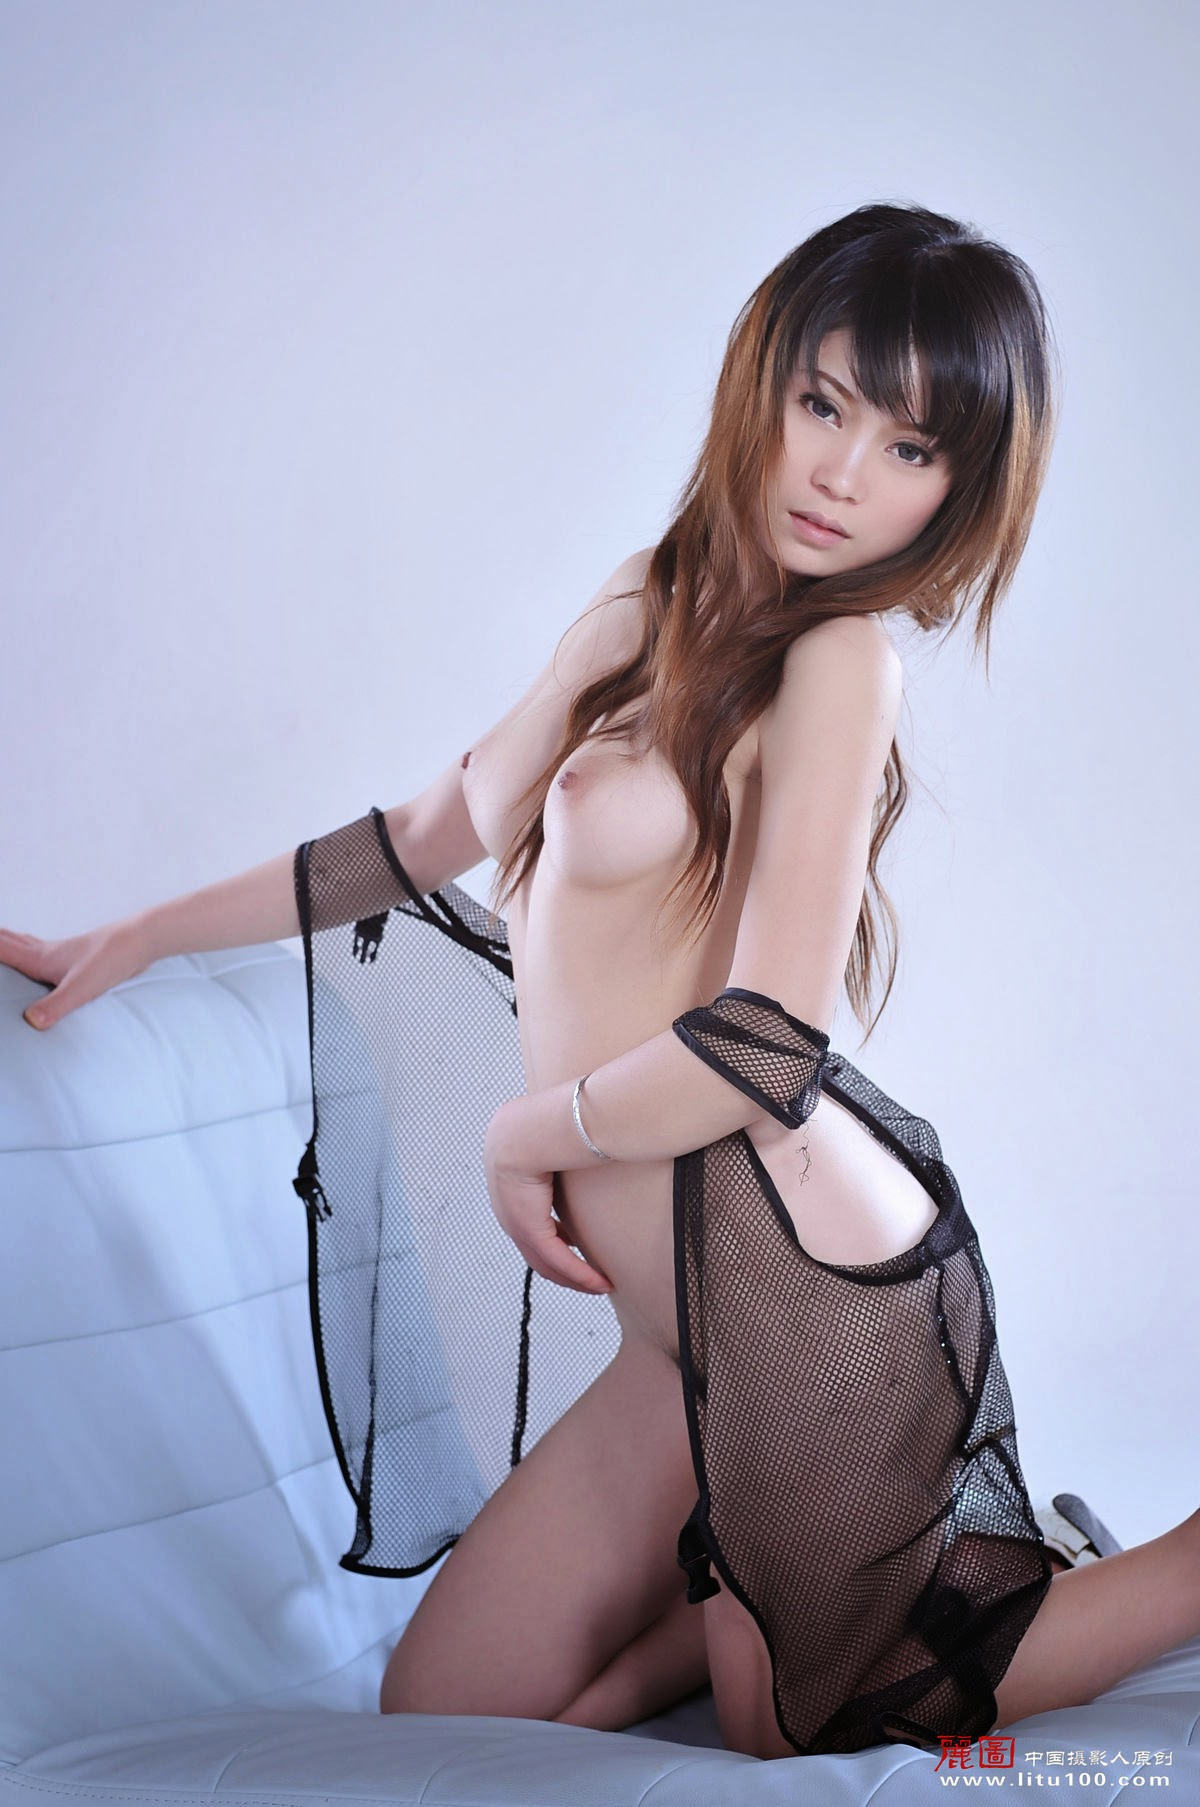 litu 100 archives: Chinese Nude Model Shan Ruo [Litu100] | chinesenudeart photos